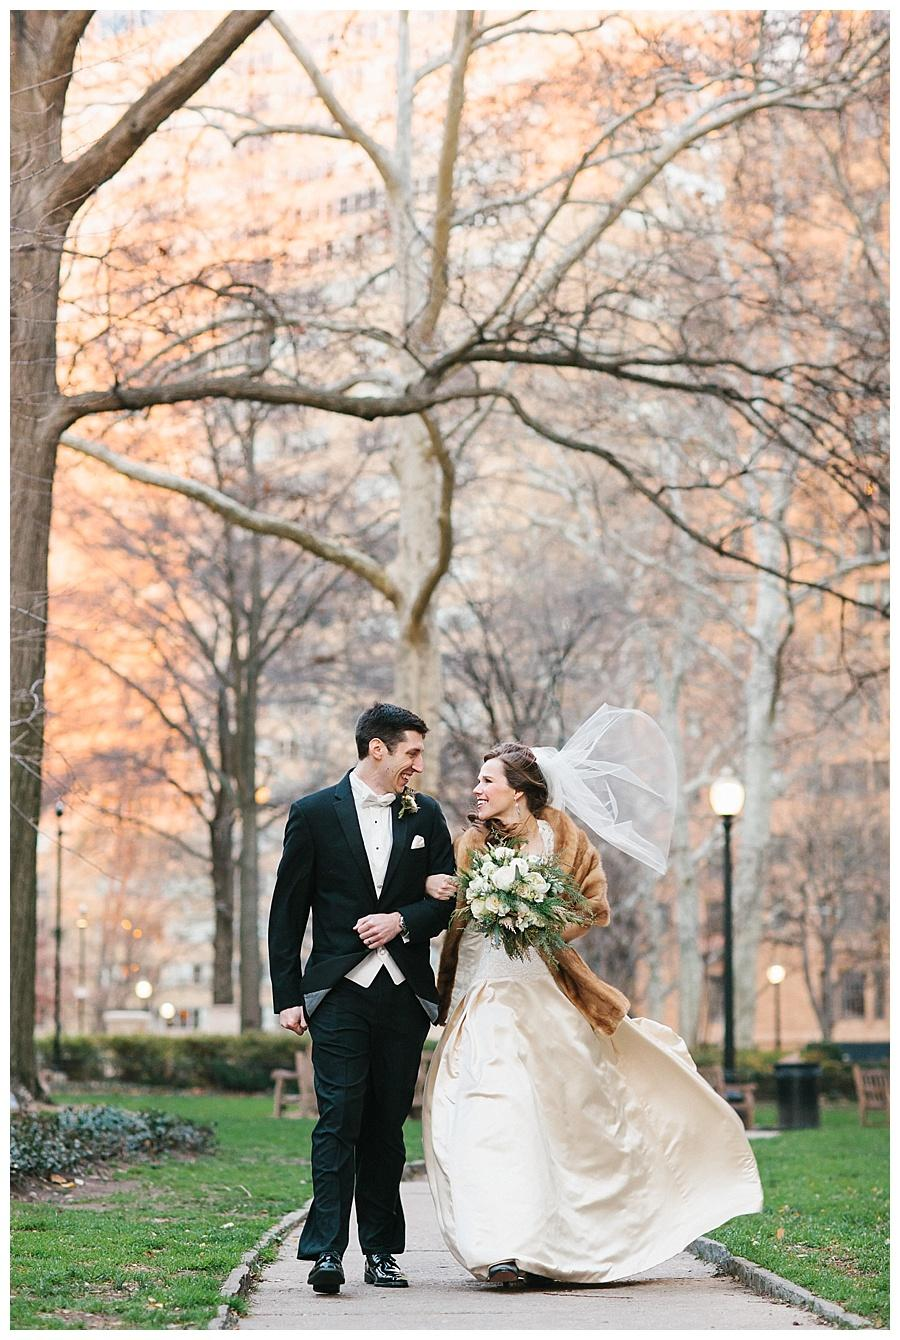 Winter Wedding at The Racquet Club of Philadelphia by Sweetwater Portraits